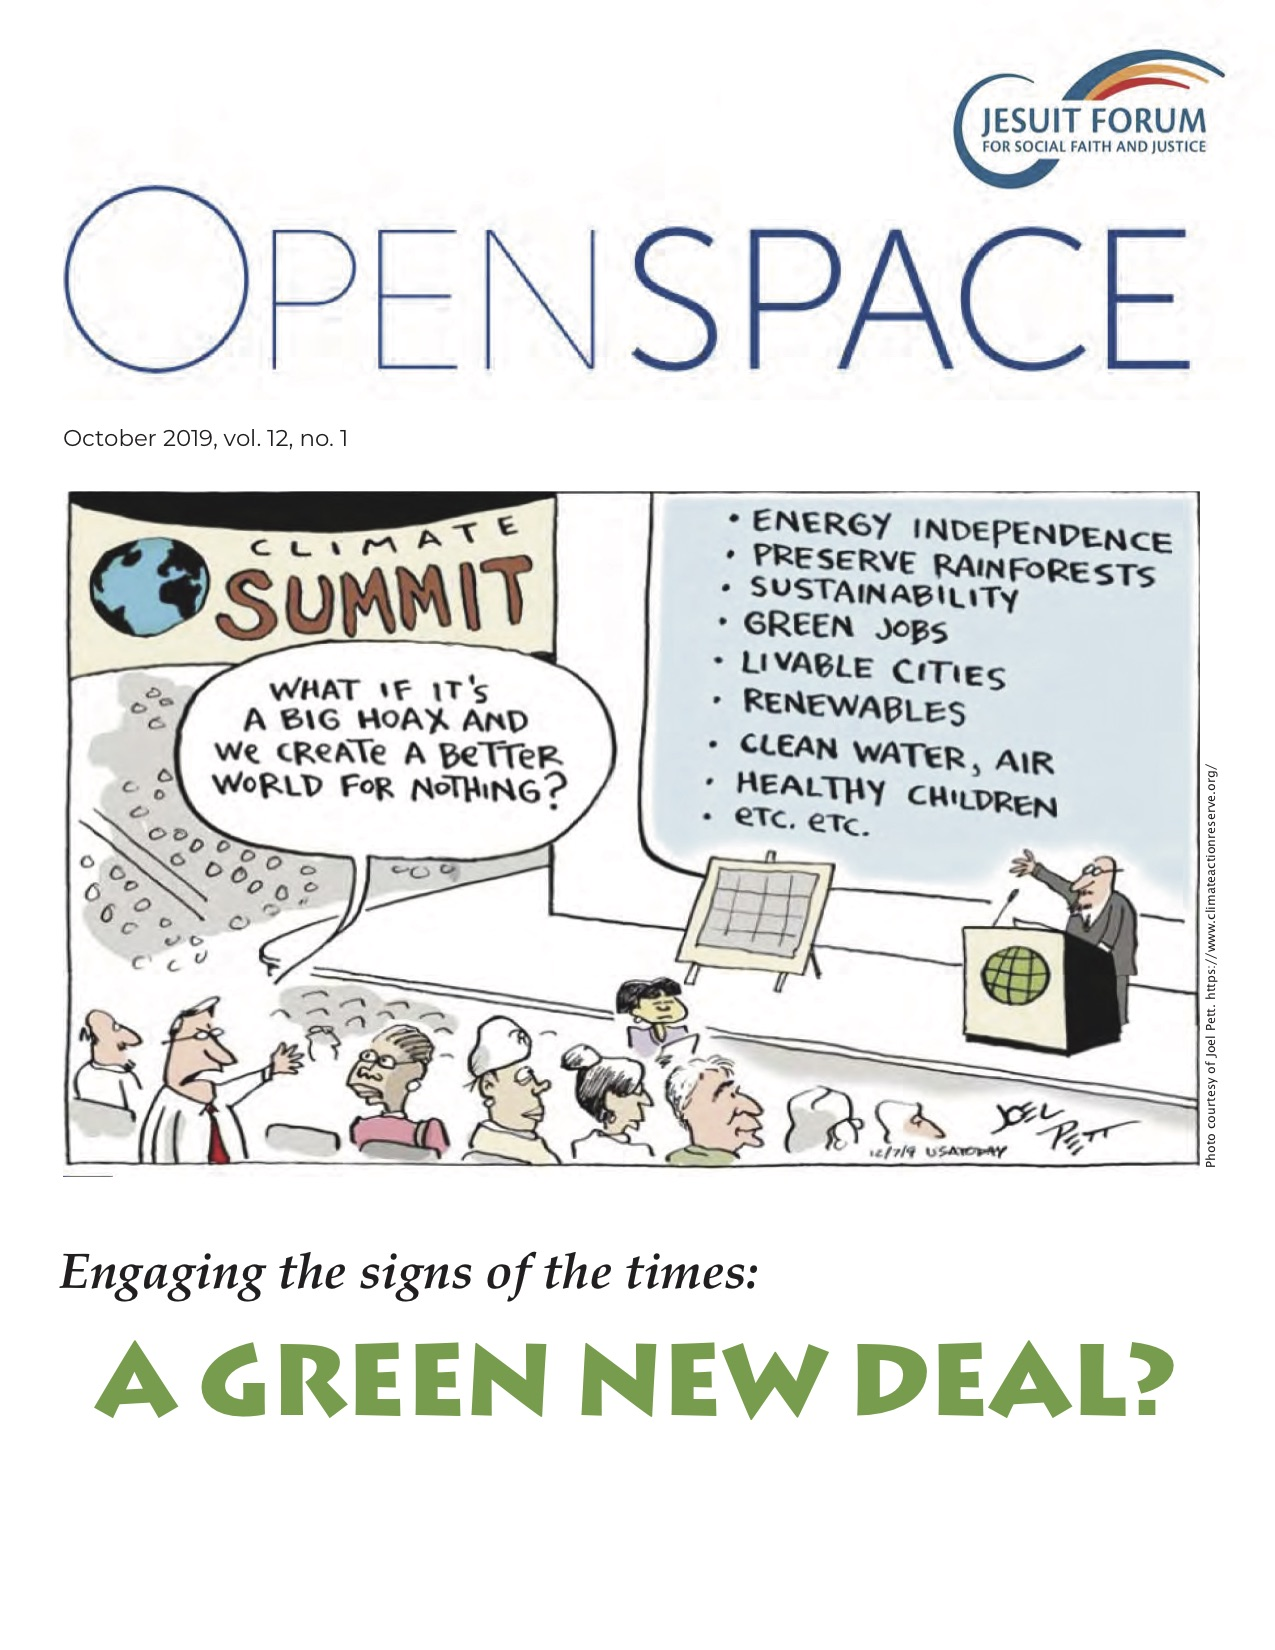 A Green New Deal? Image